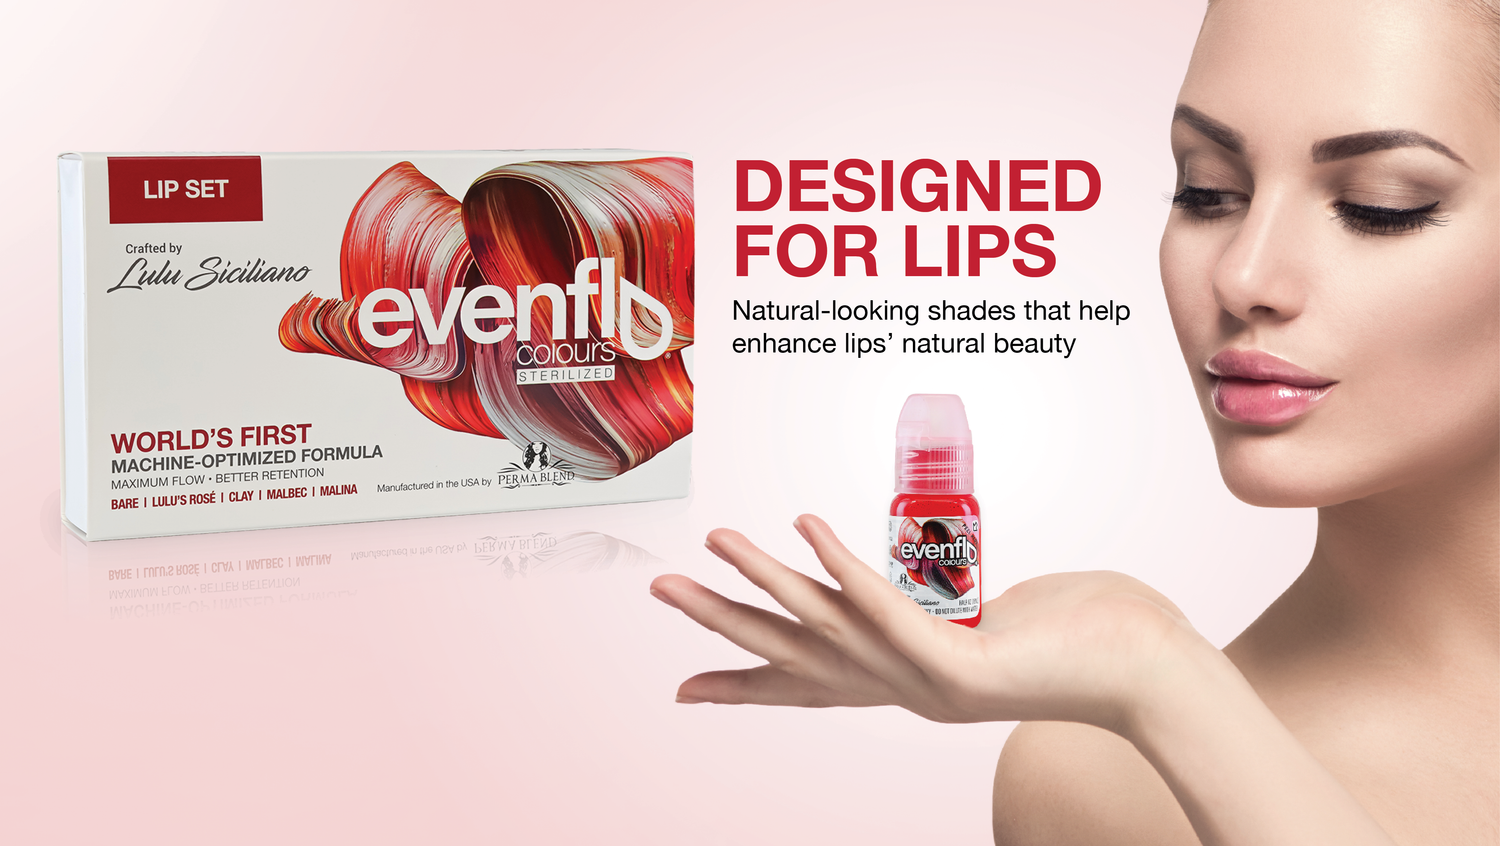 Evenflo-Colours-Lip-Set-Main-Banner-Designed-for-lips-permanent-makeup-microbeau_1500.png